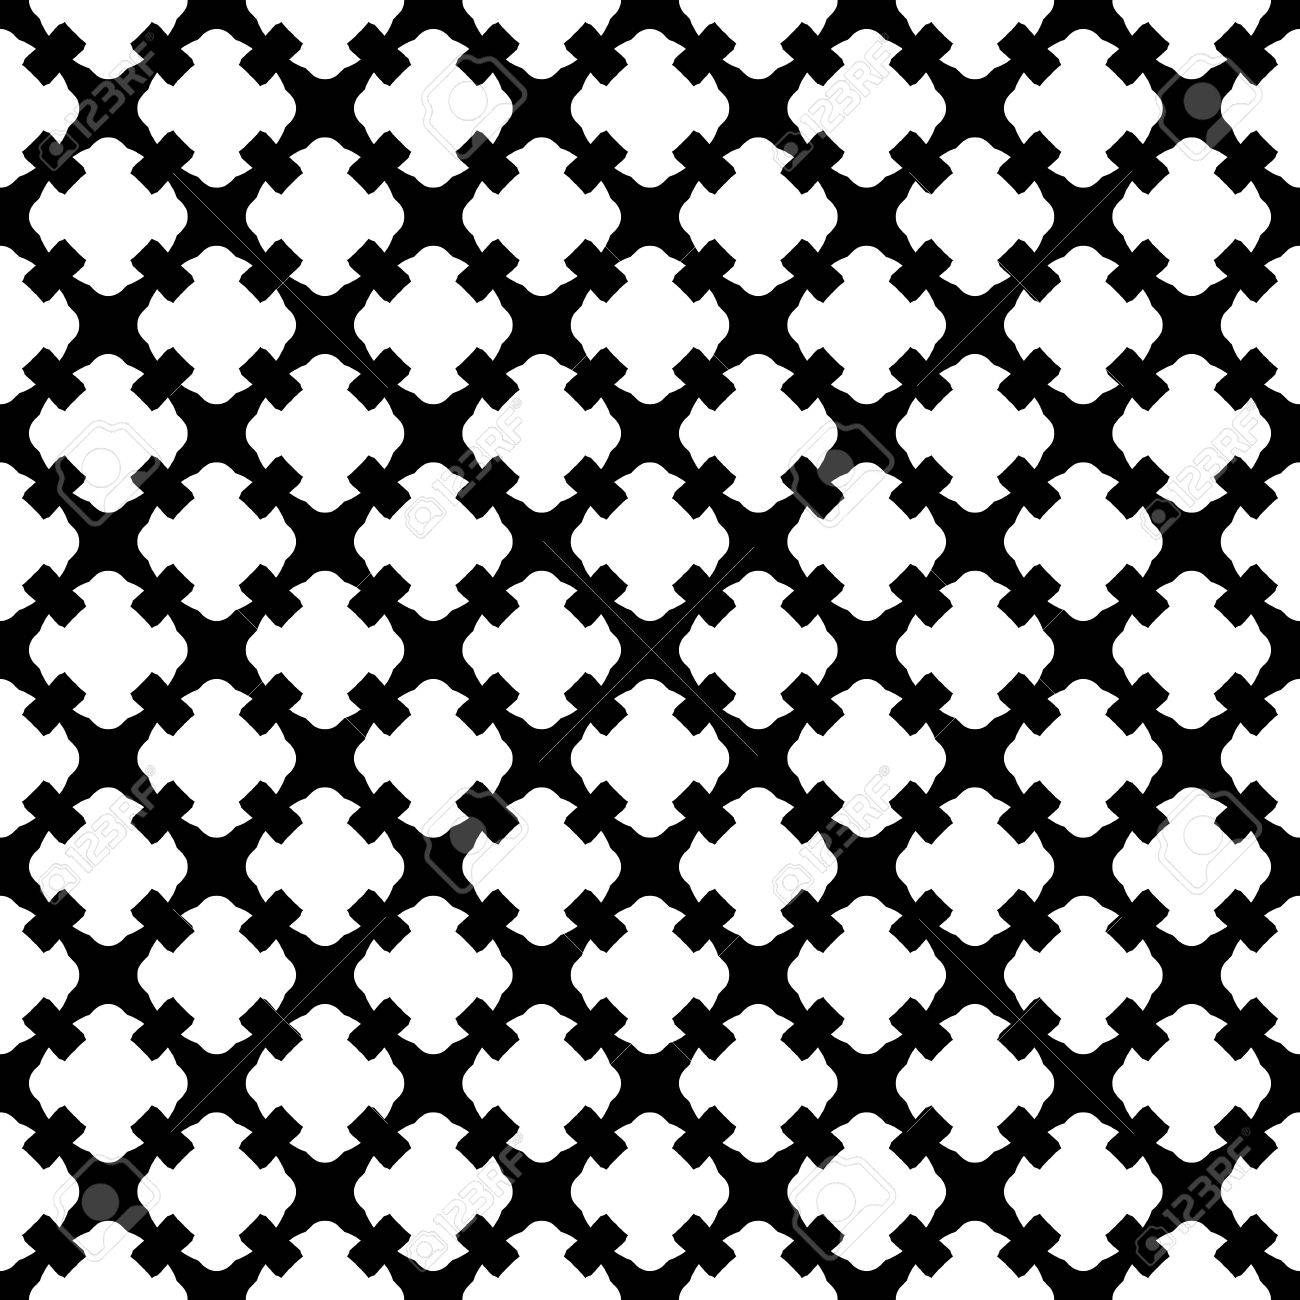 Simple Black White Geometric Texture Endless Ornamental Background Retro Gothic Style Symmetric Square Abstract Backdrop Repeat Tiles Design Element